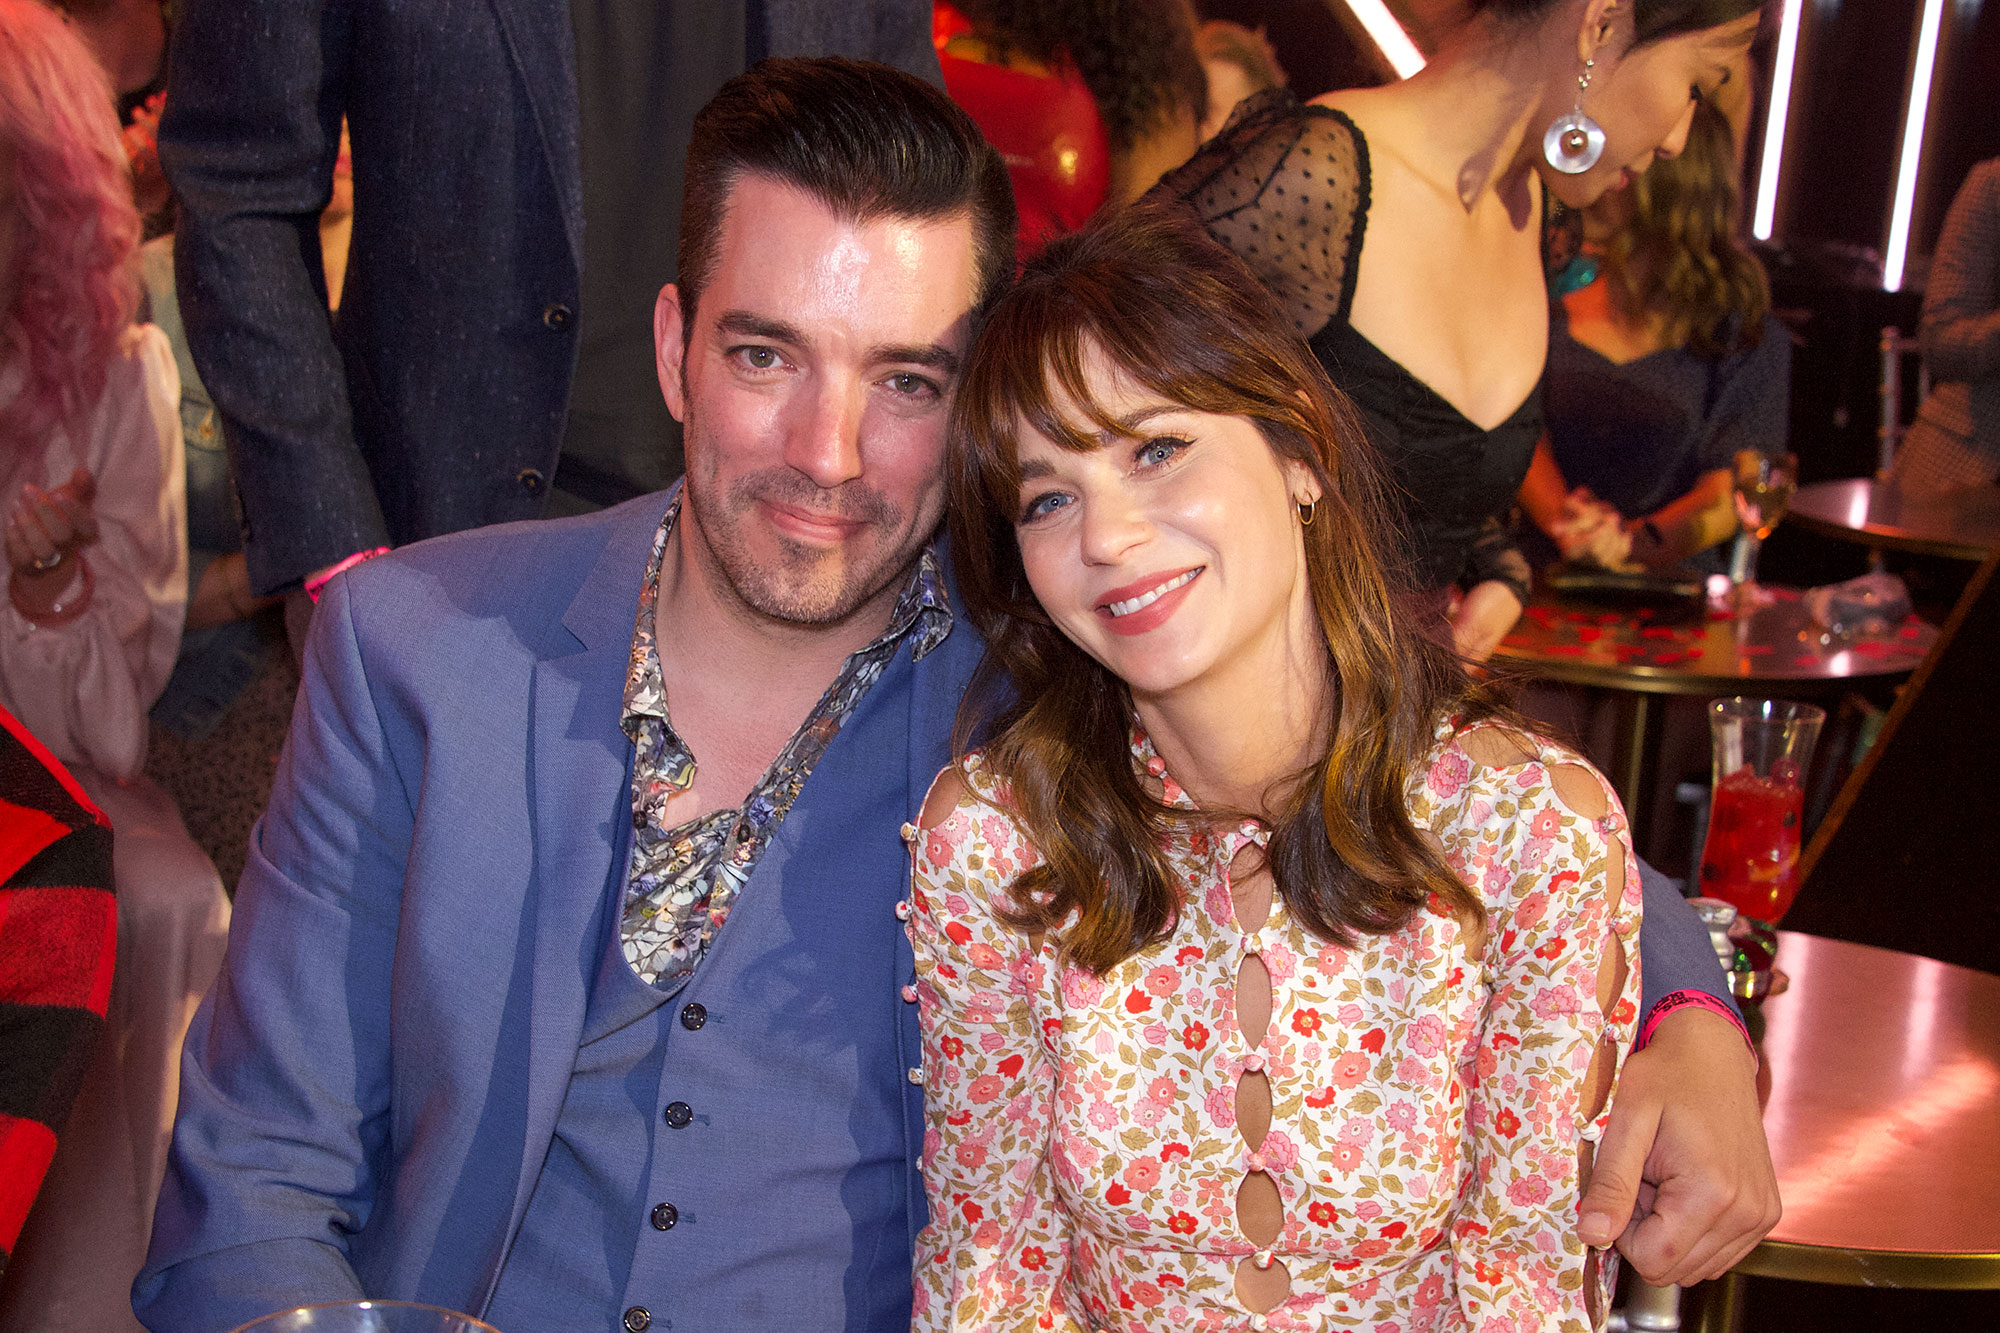 Jonathan Scott Has 'Already Moved Some of His Belongings' Into GF Zooey Deschanel's Place